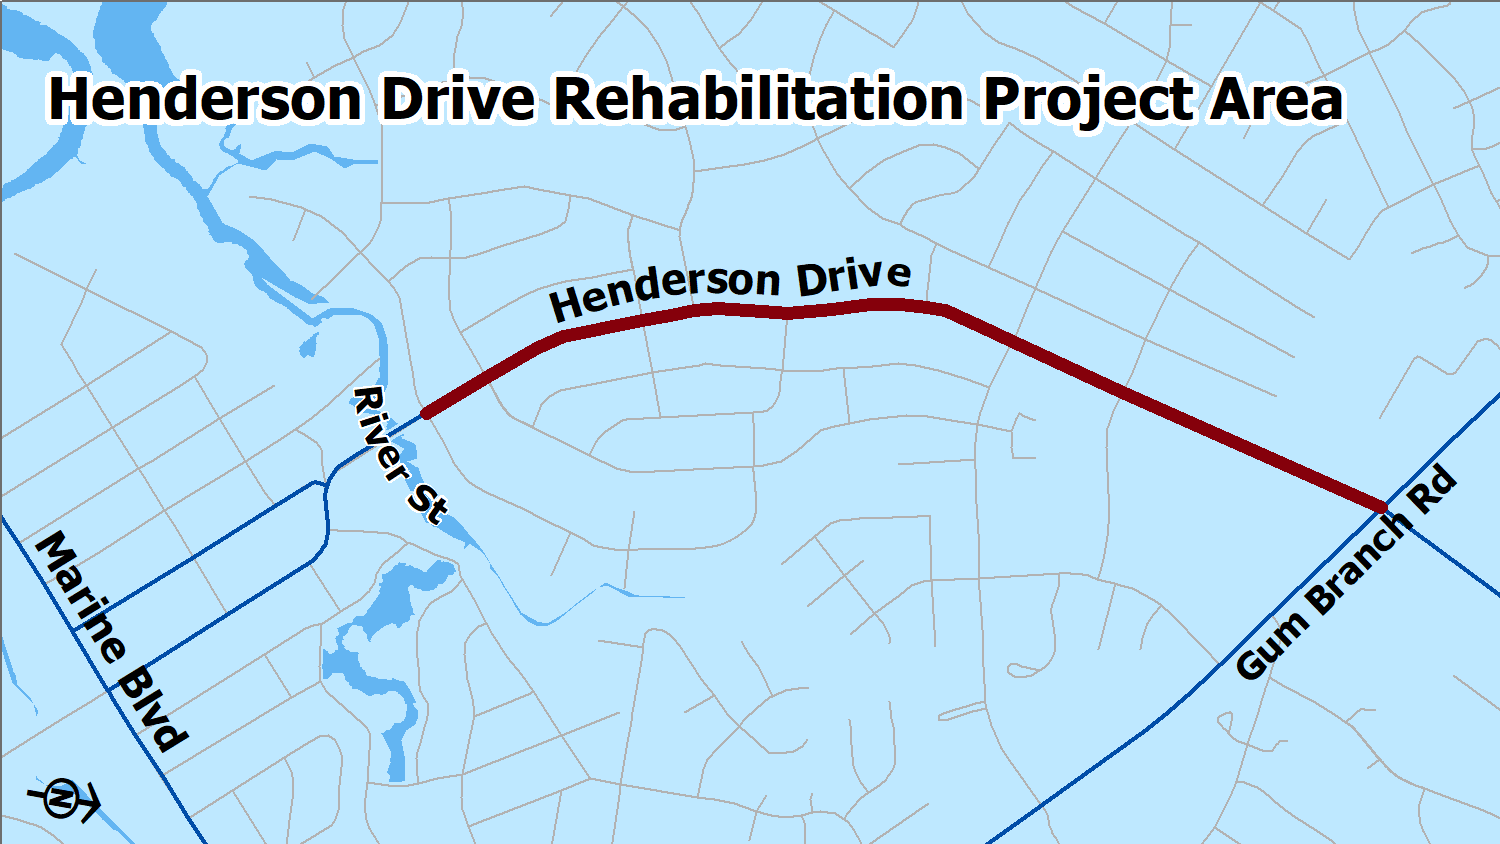 HendersonDr Map of Project Work-2019-01